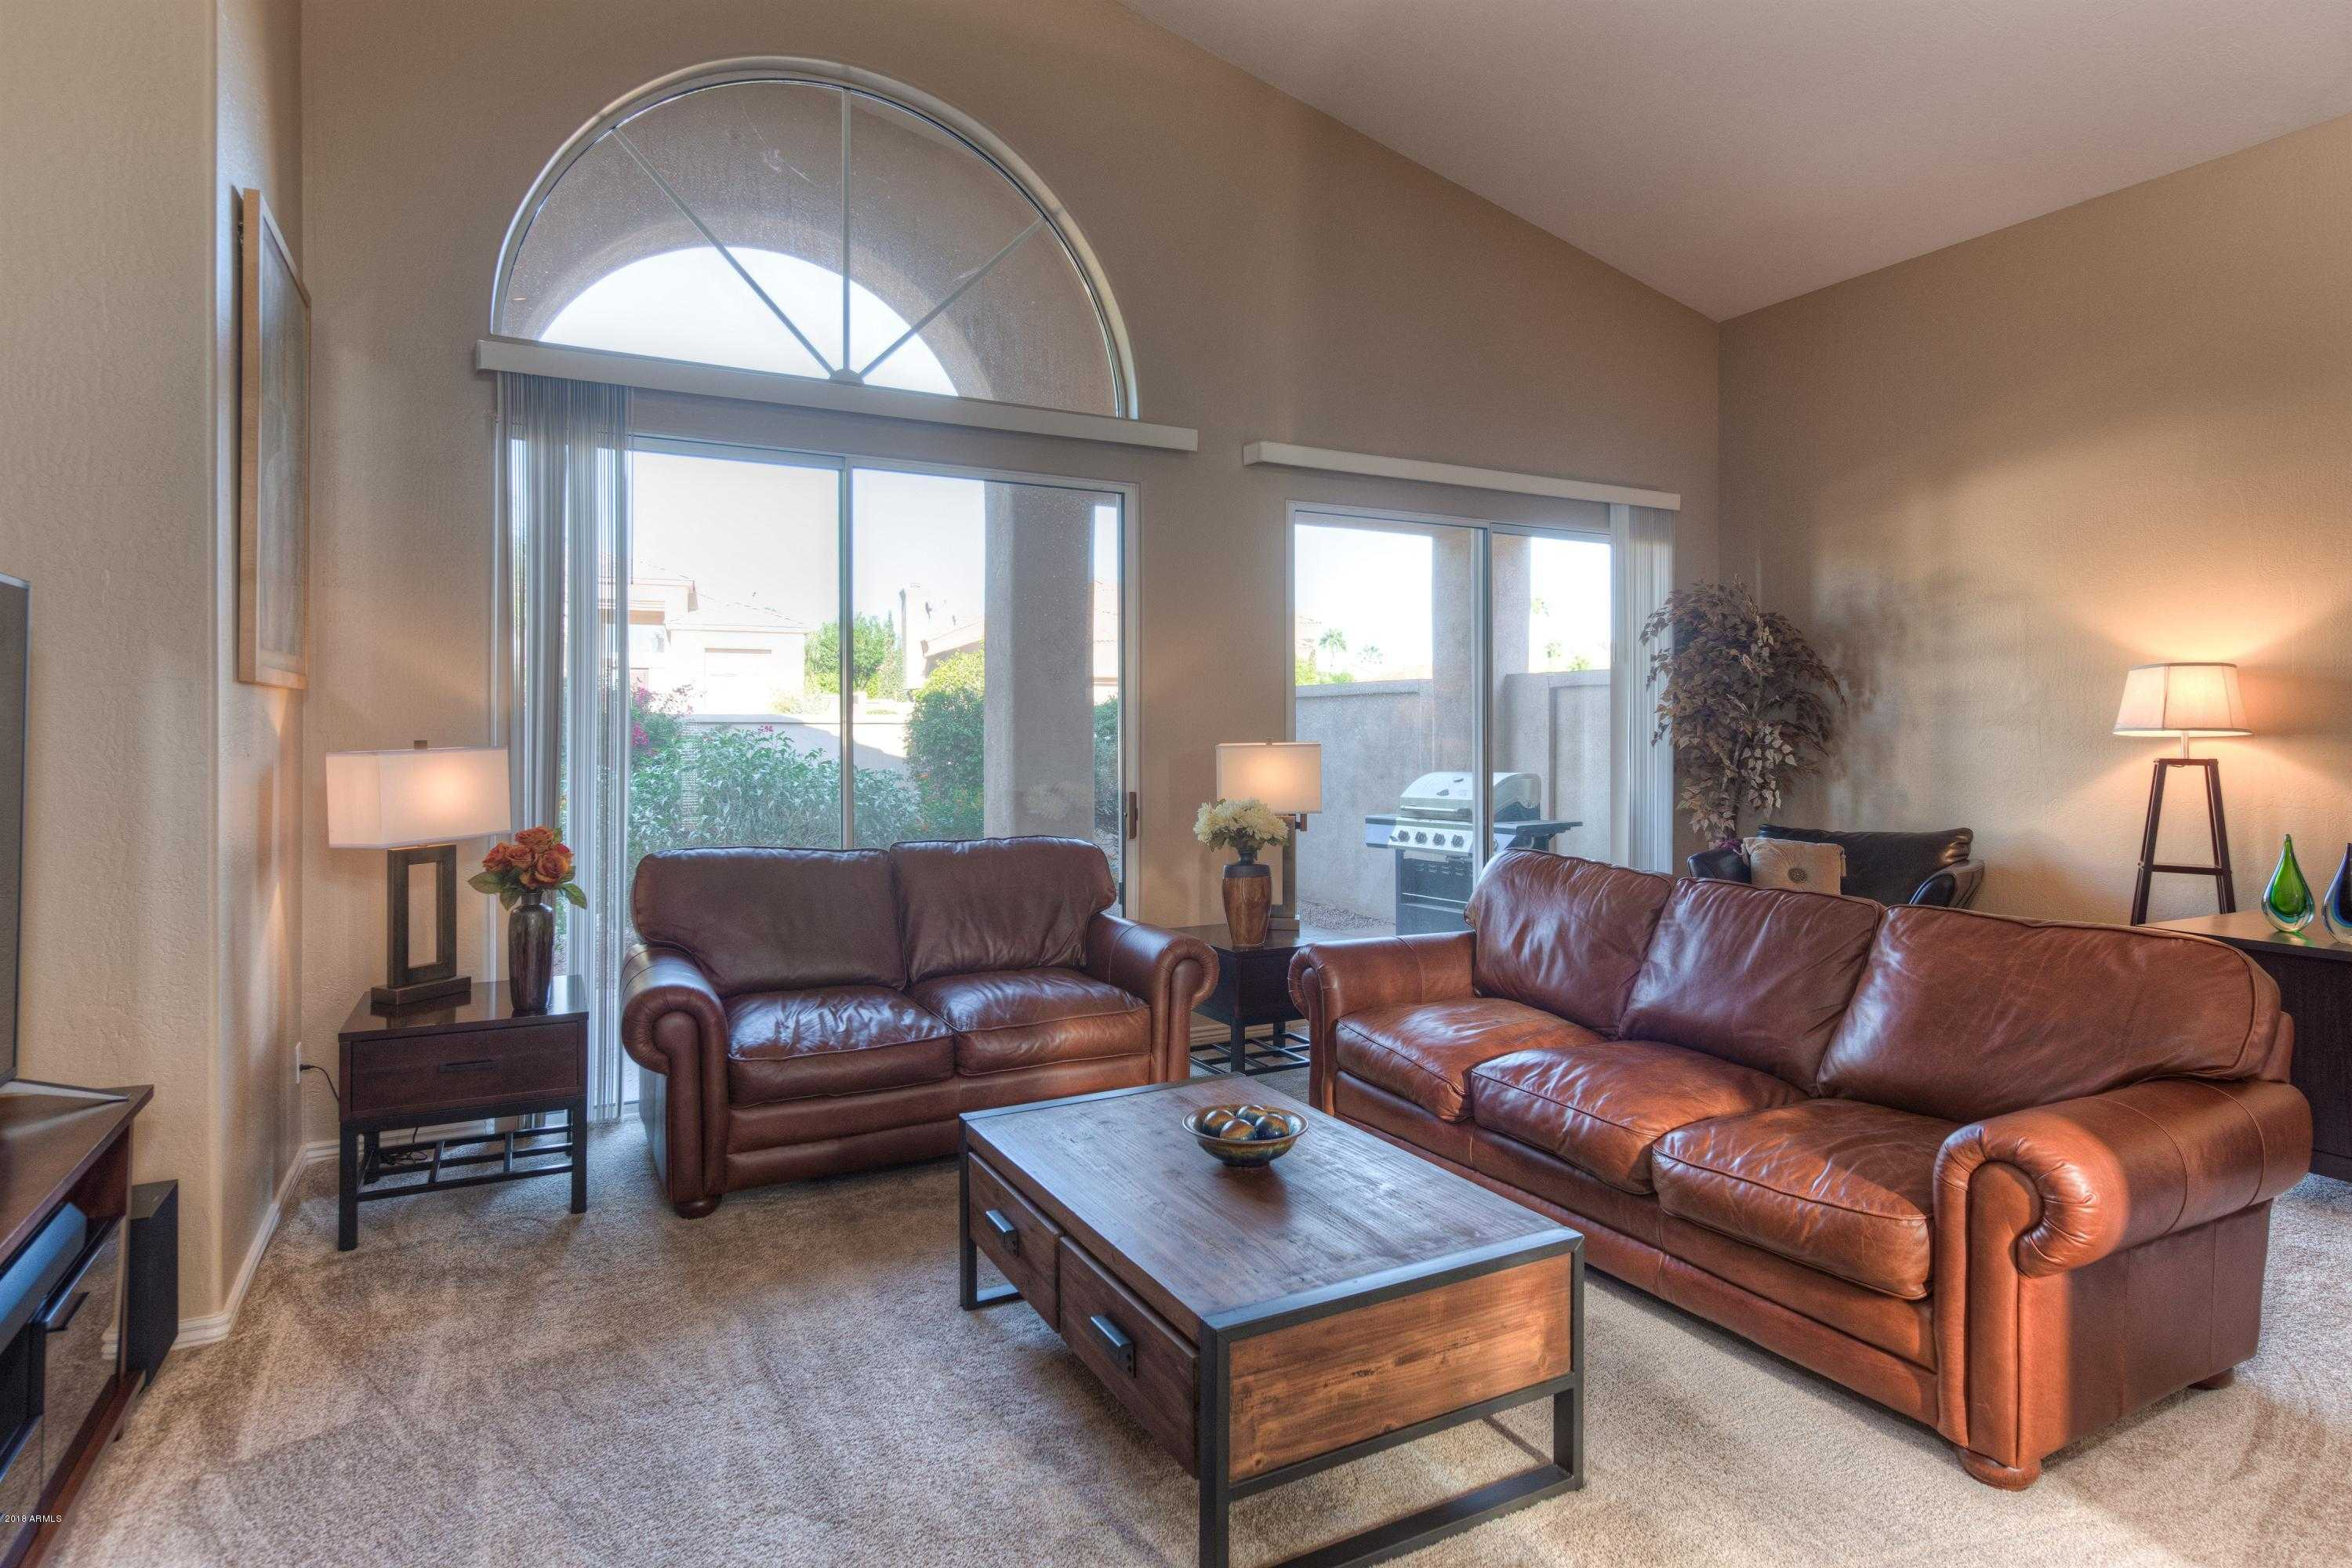 $469,000 - 2Br/2Ba - Home for Sale in Stonegate, Scottsdale